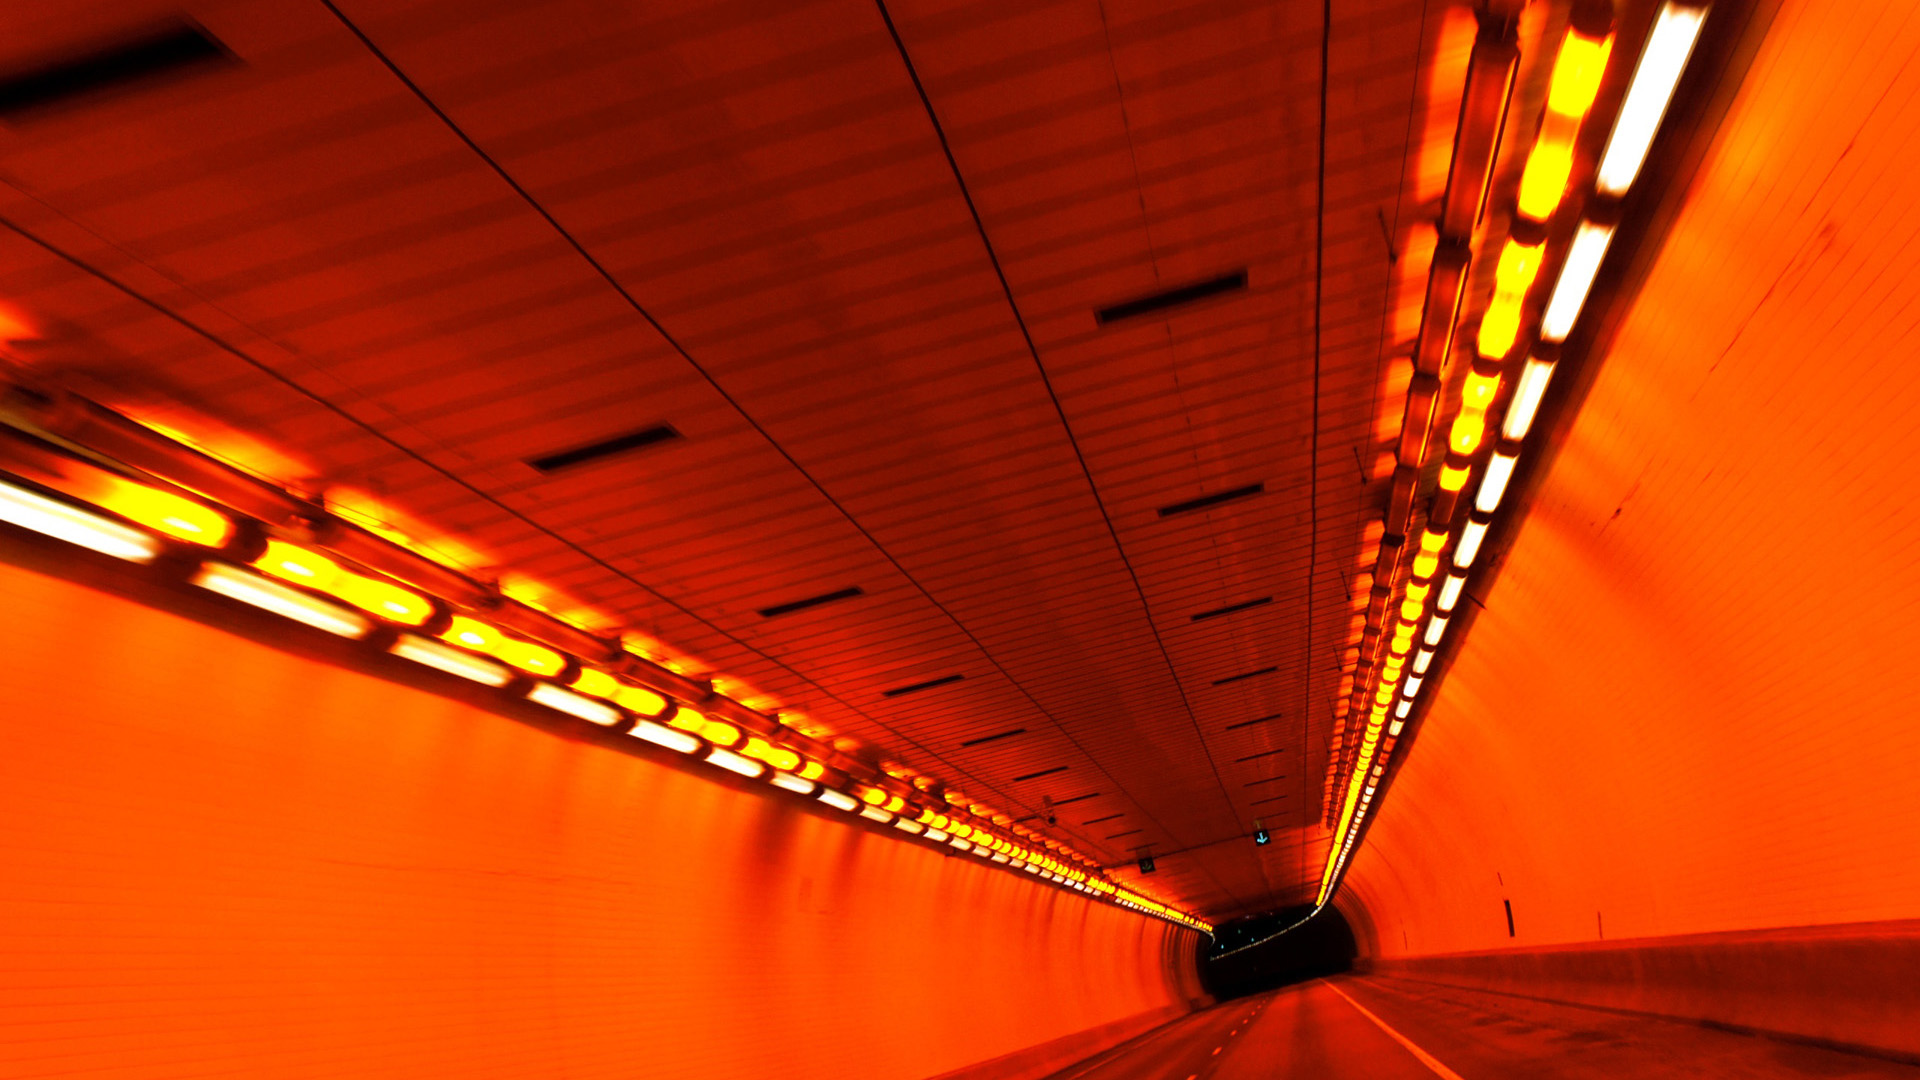 tunnel desktop wallpaper pictures 59762